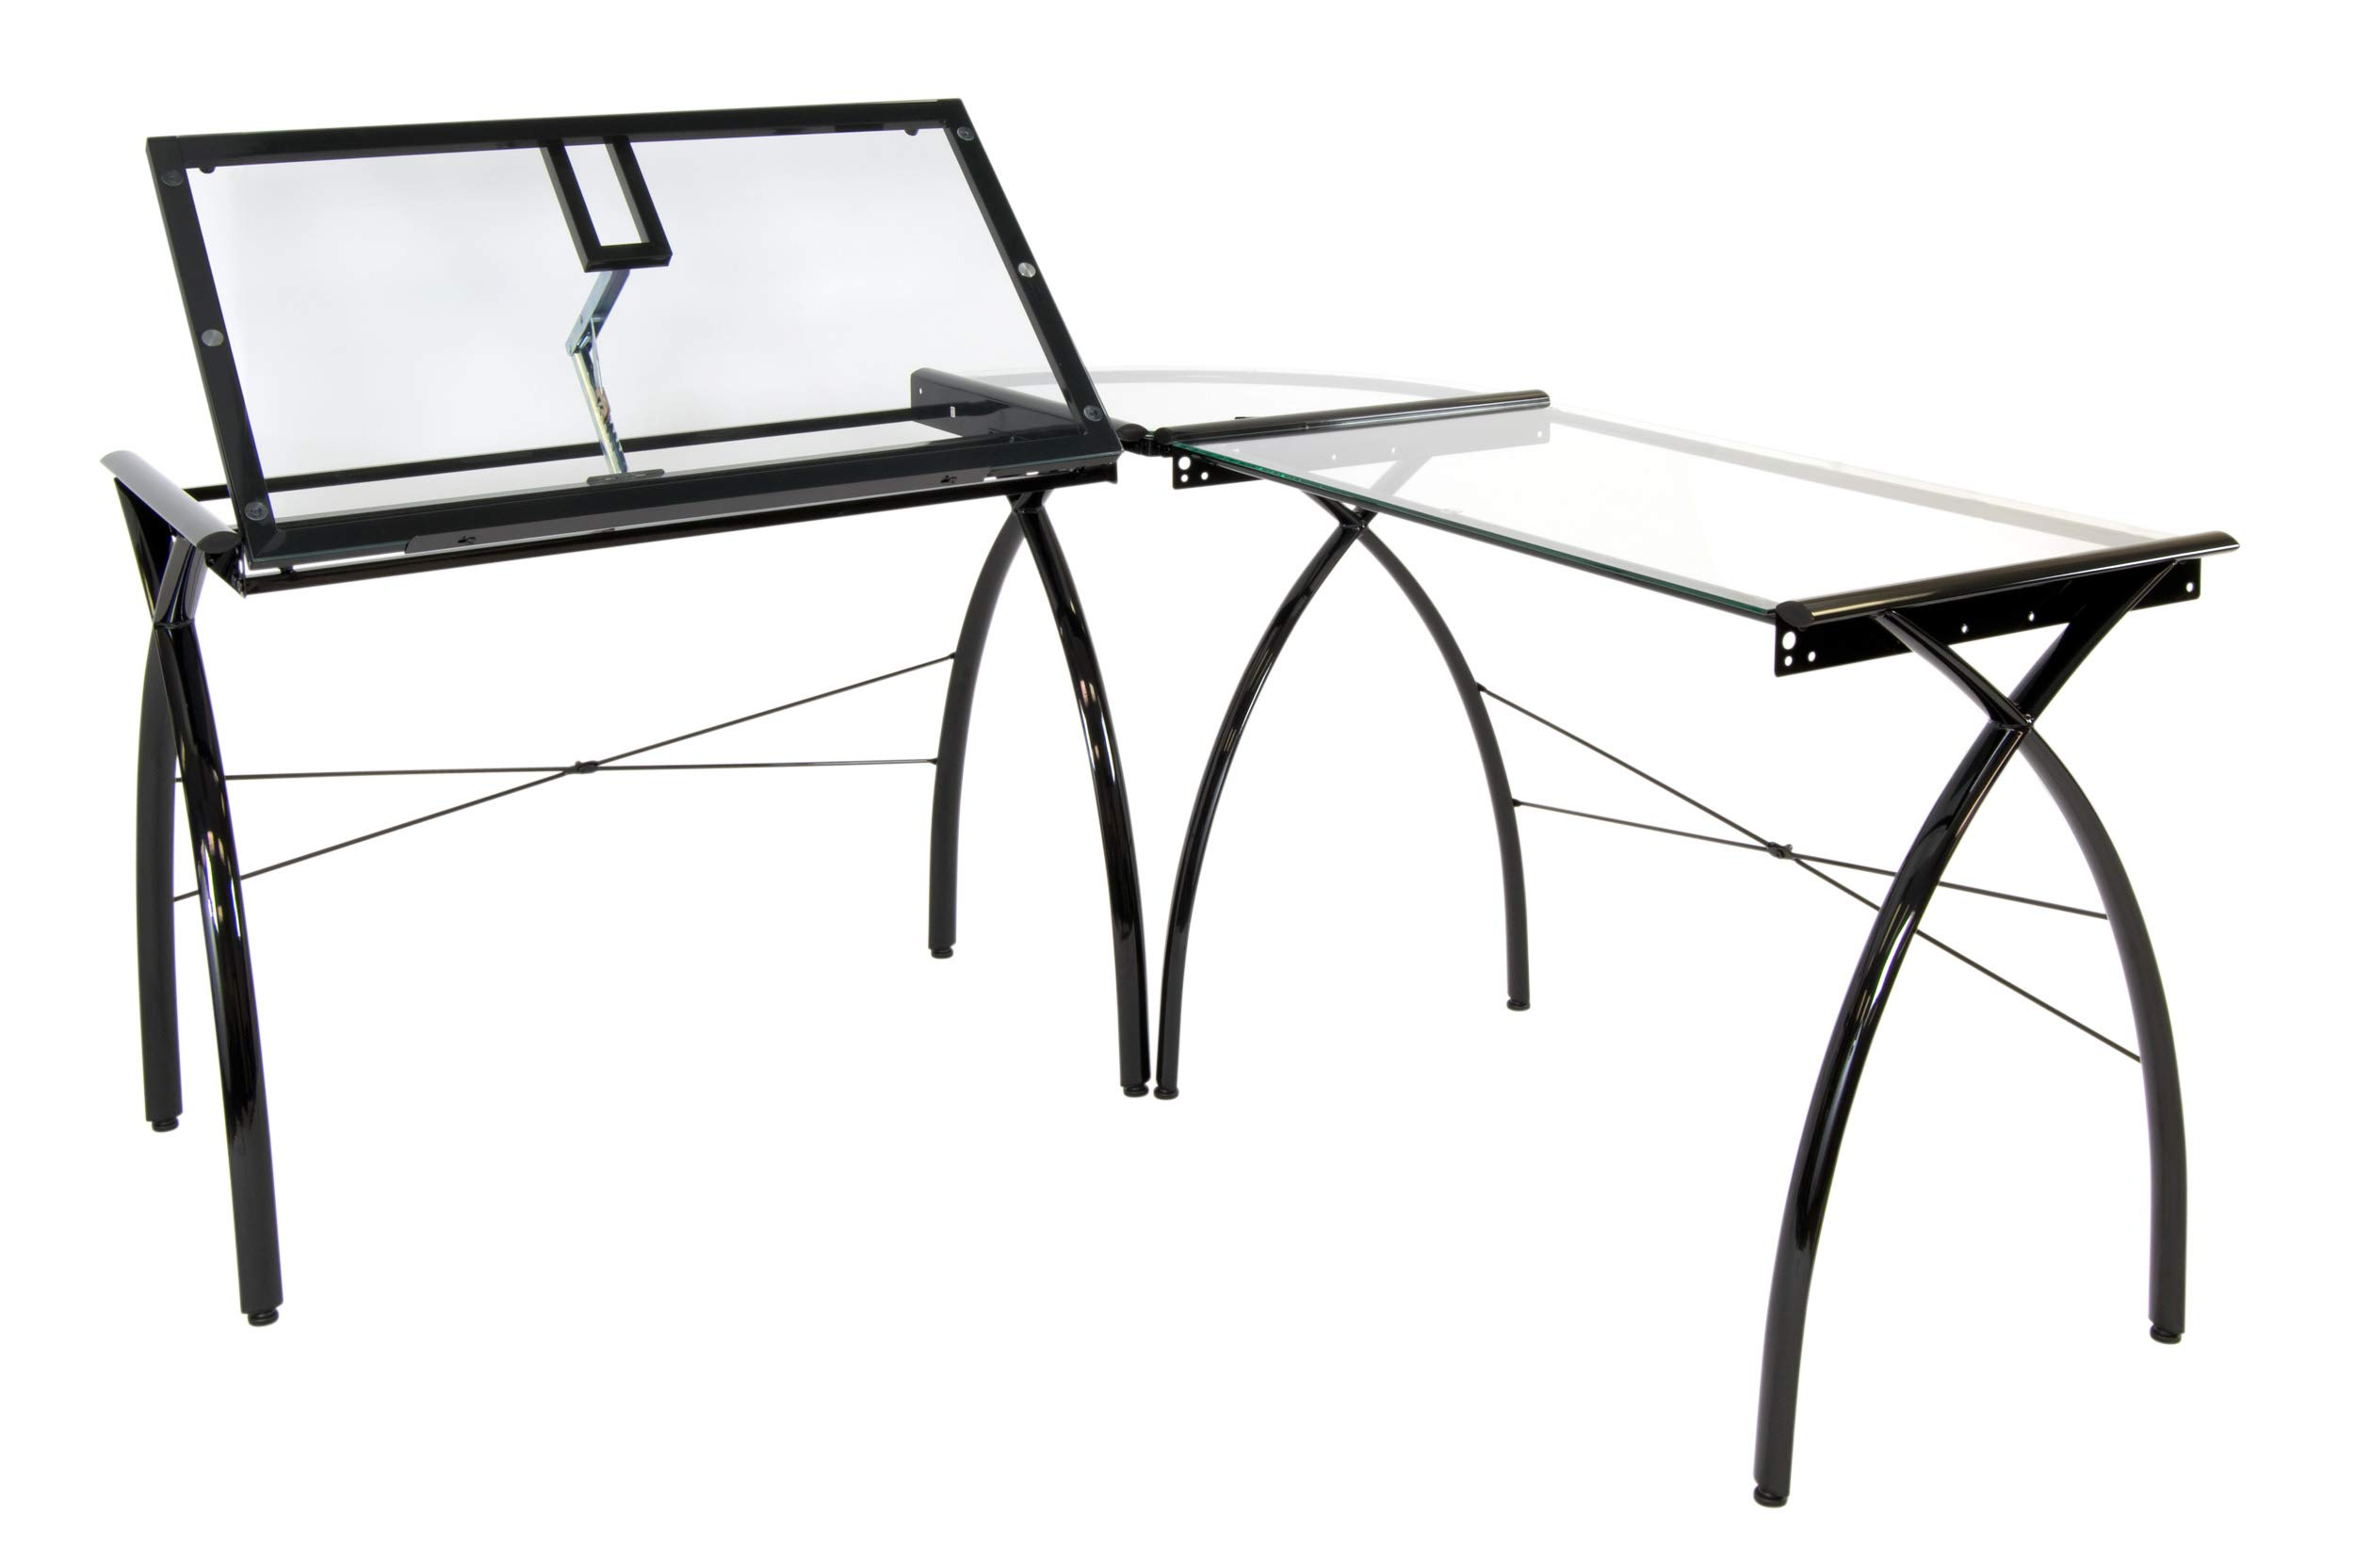 Studio Designs Futura LS WorkCenter with Tilt Top Adjustable Drafting Table Craft Table Drawing Desk Hobby Table Writing Desk Studio Desk, Black / Clear Glass by SD STUDIO DESIGNS